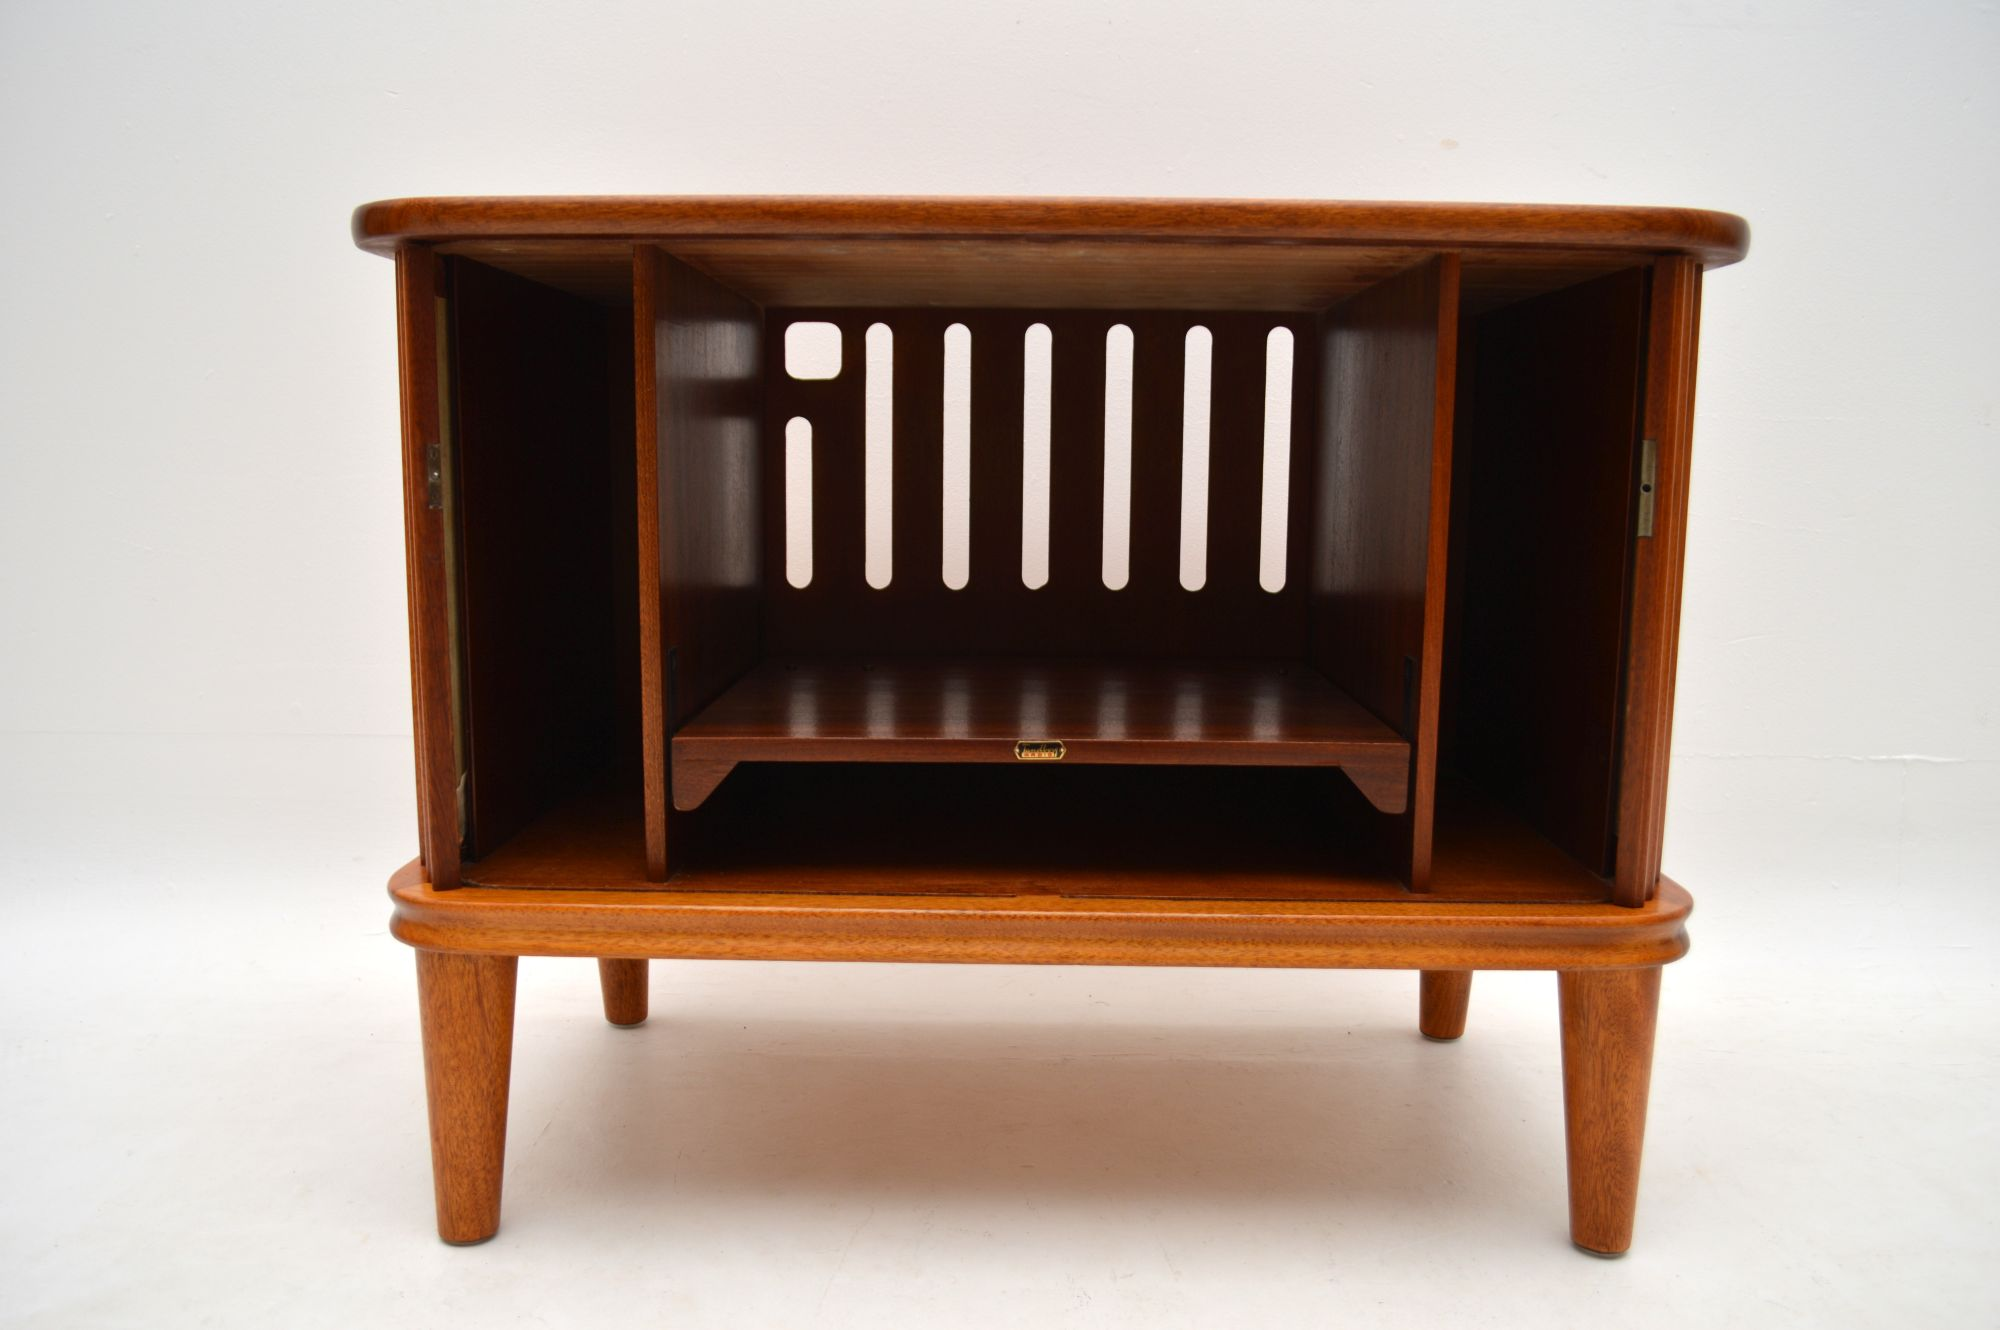 1960 S Vintage Teak Tv Cabinet Retrospective Interiors Vintage Furniture